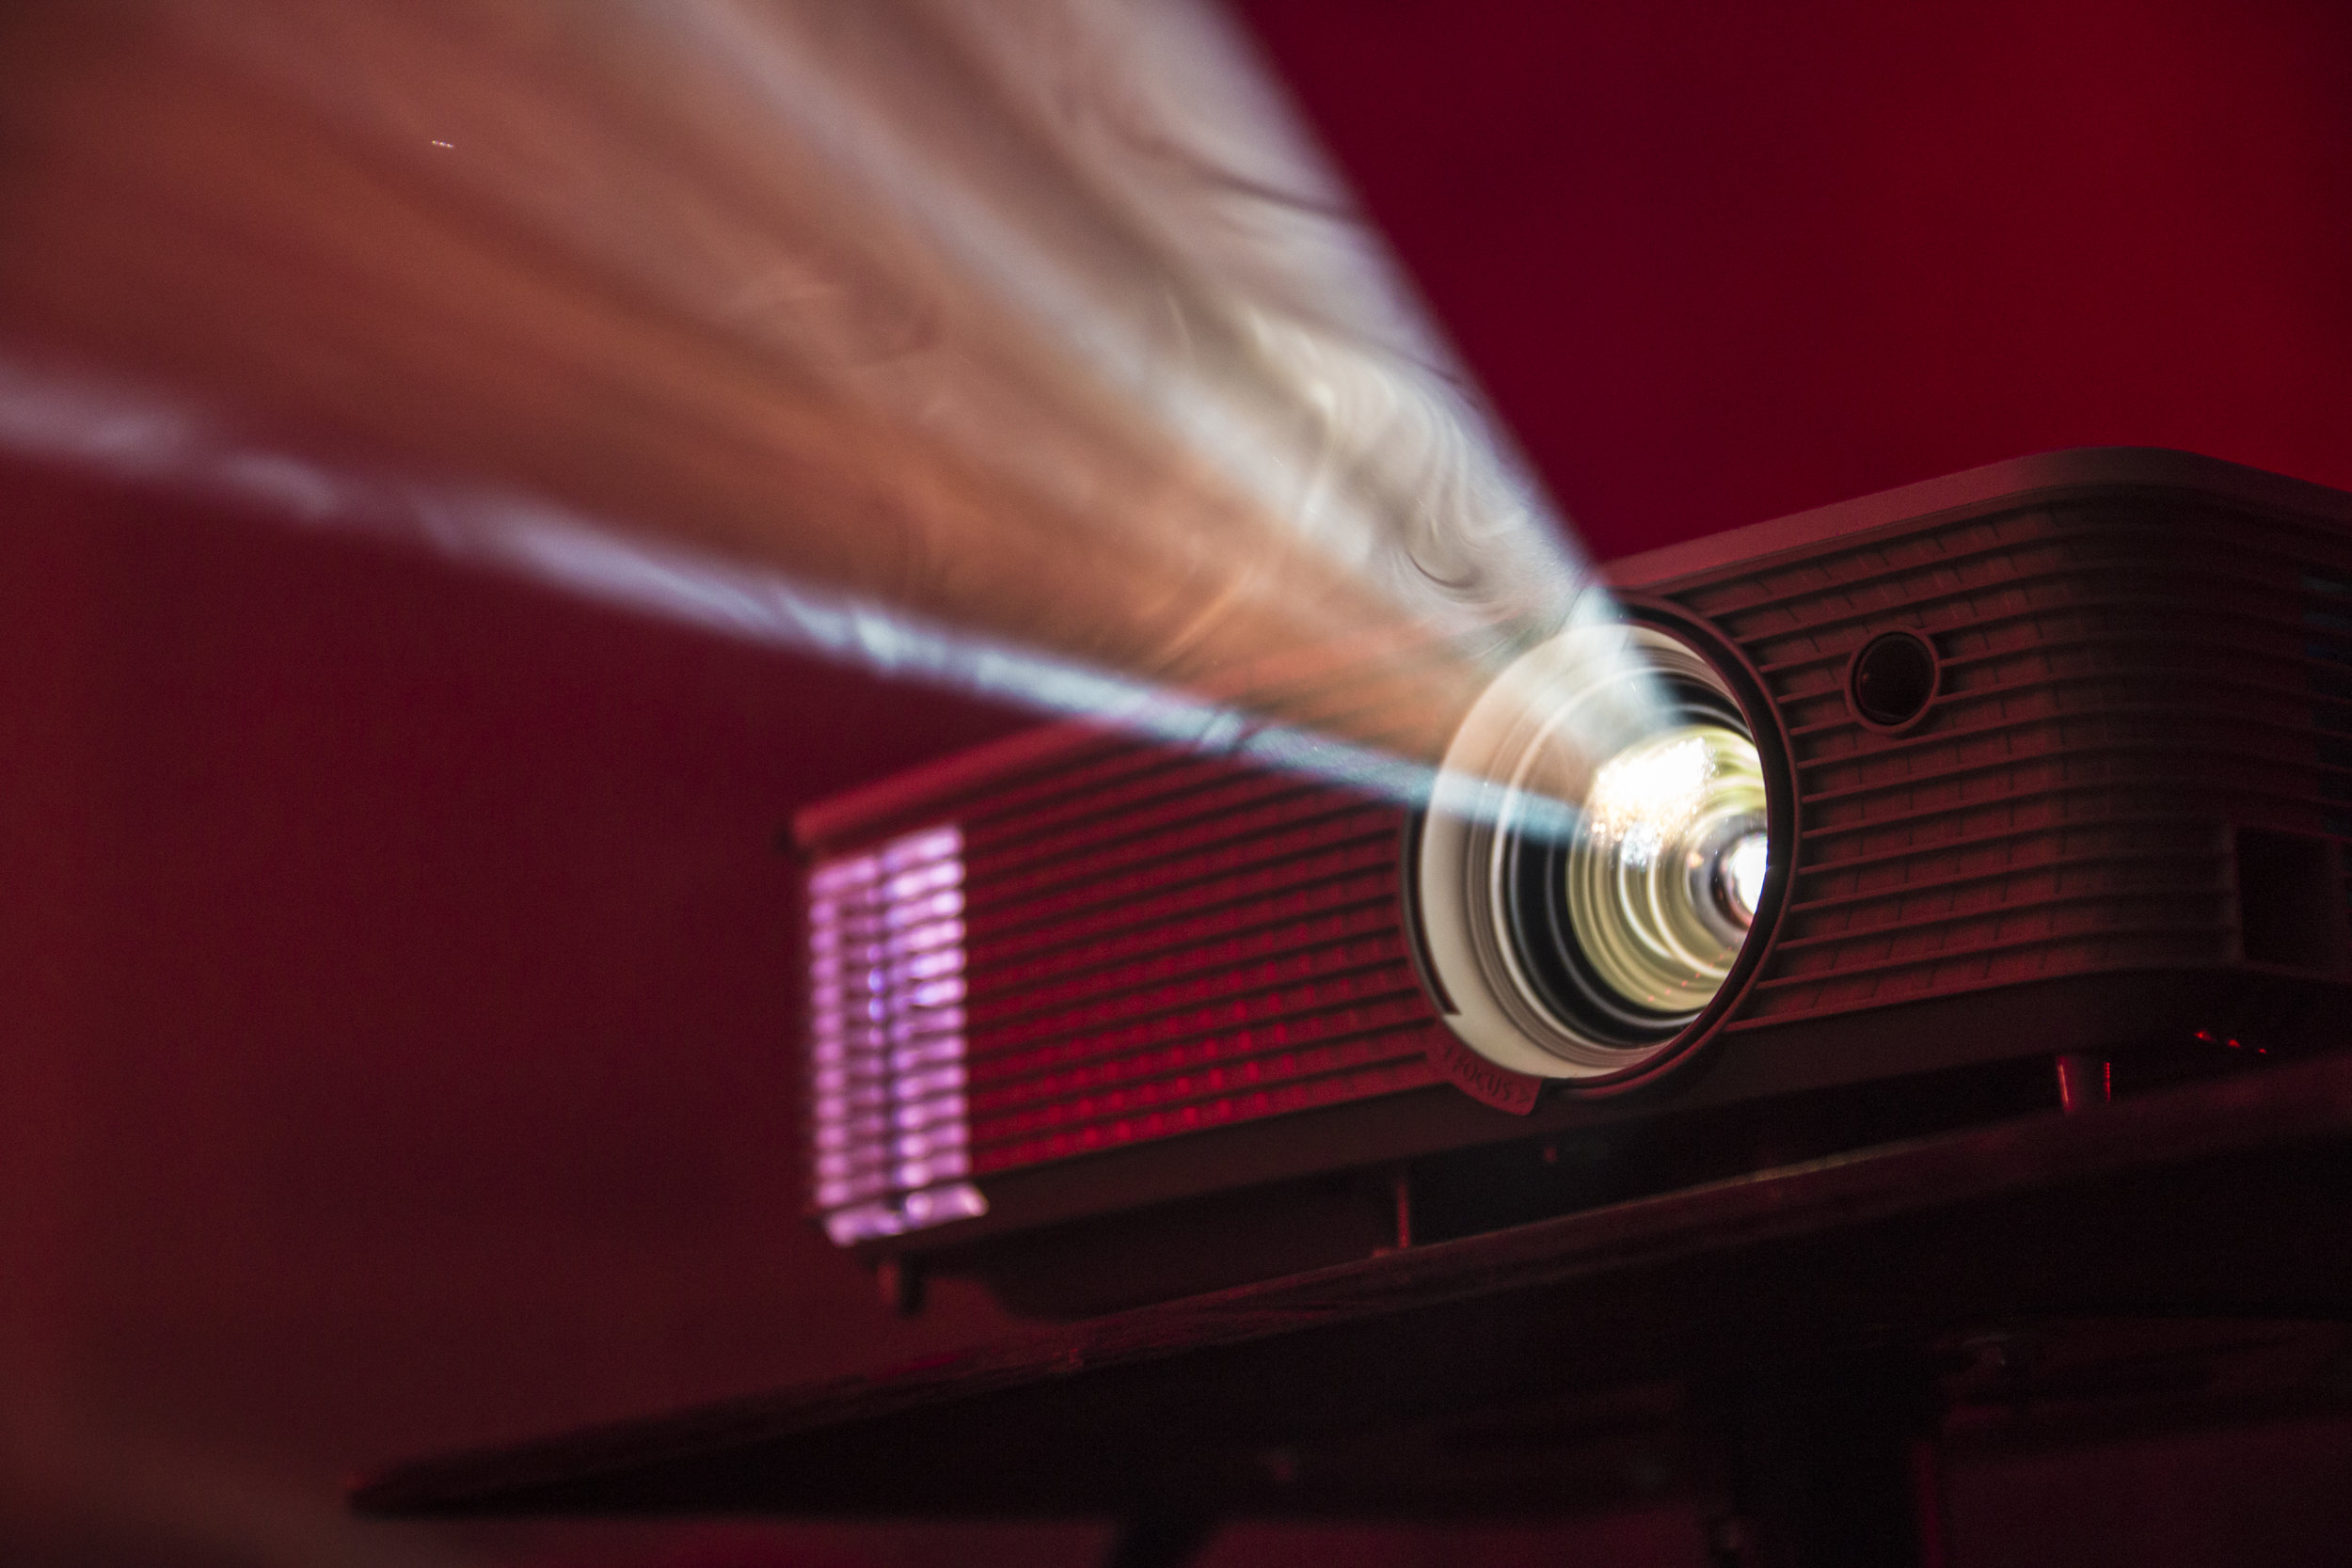 Audio/Video (A/V) - The Royale has wireless internet, a projector and sound system. We have the ability to project slideshows, videos and presentations.